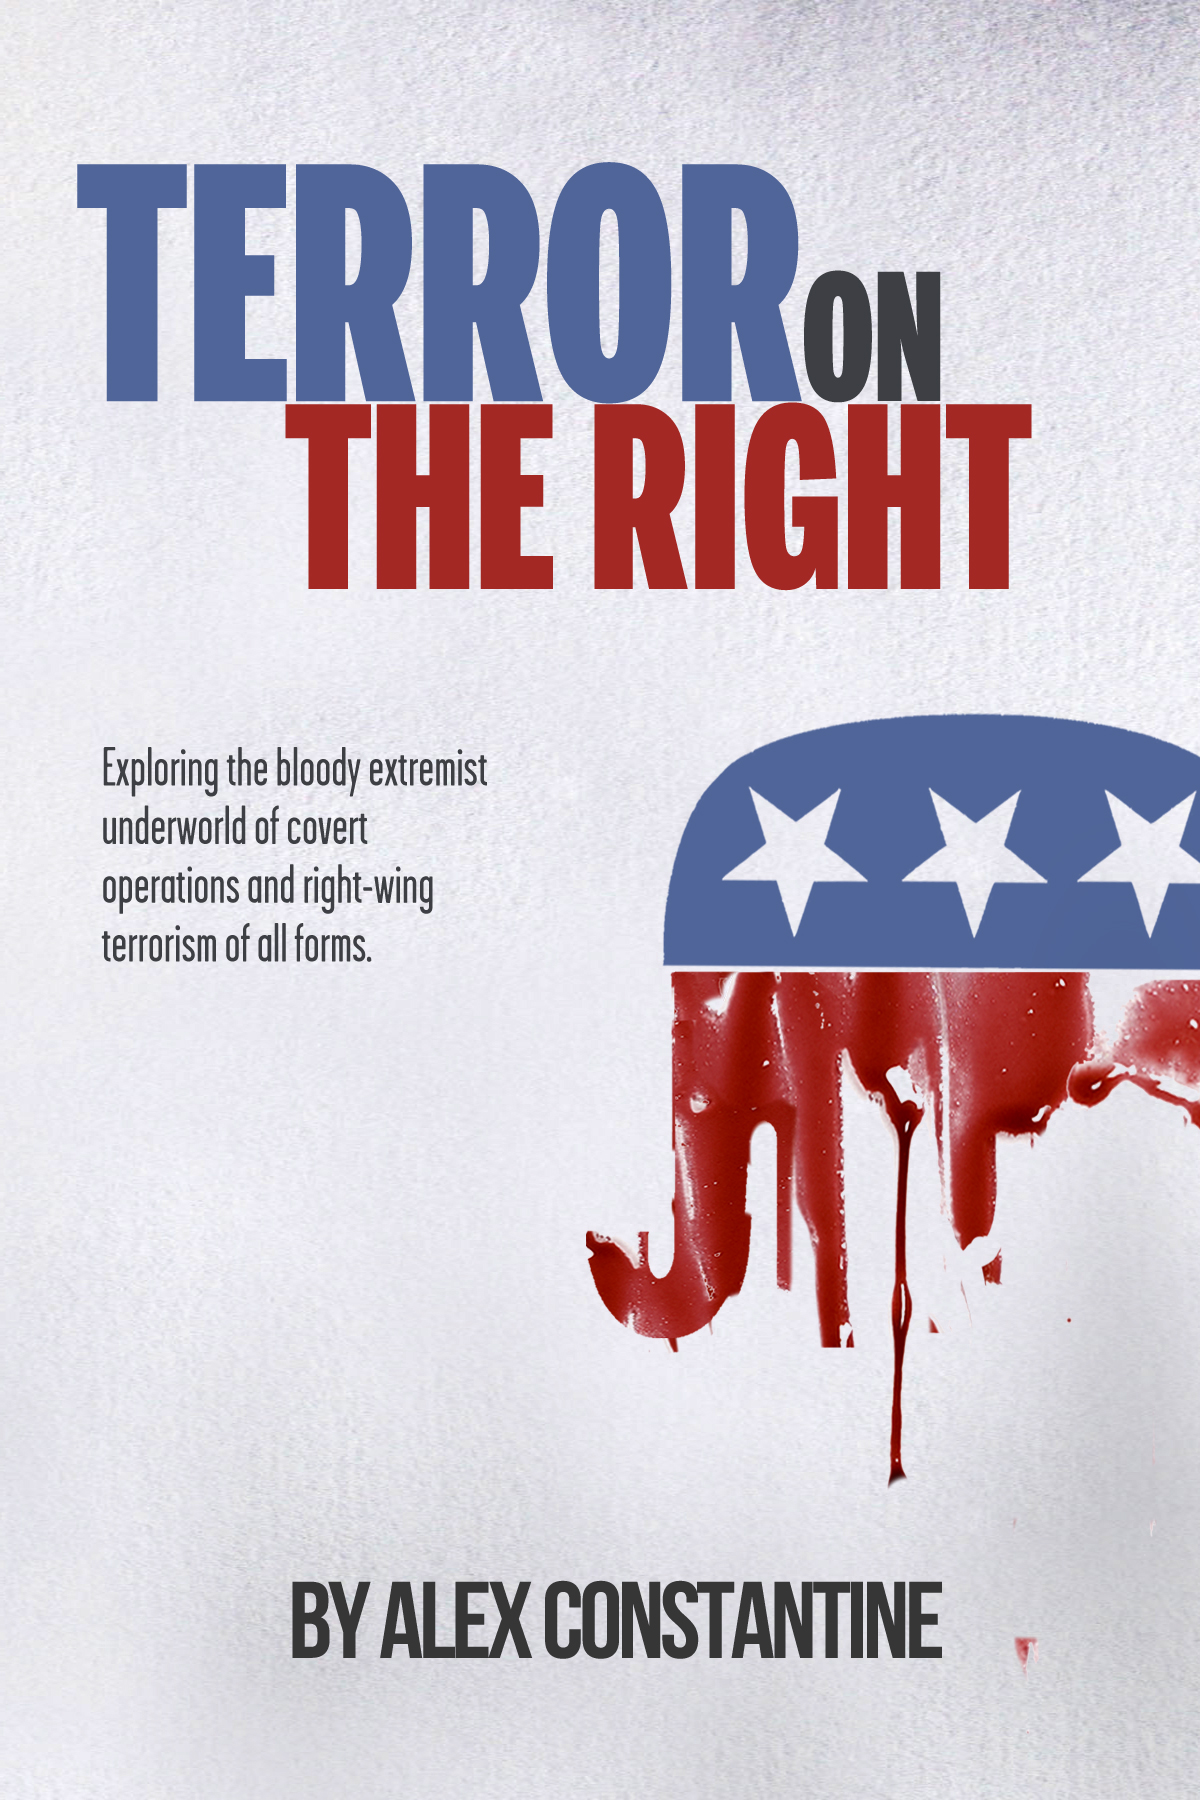 """E-Books by Alex Constantine: """"The Covert War Against Rock"""" & """"Terror on the Right"""" (Excerpts)"""